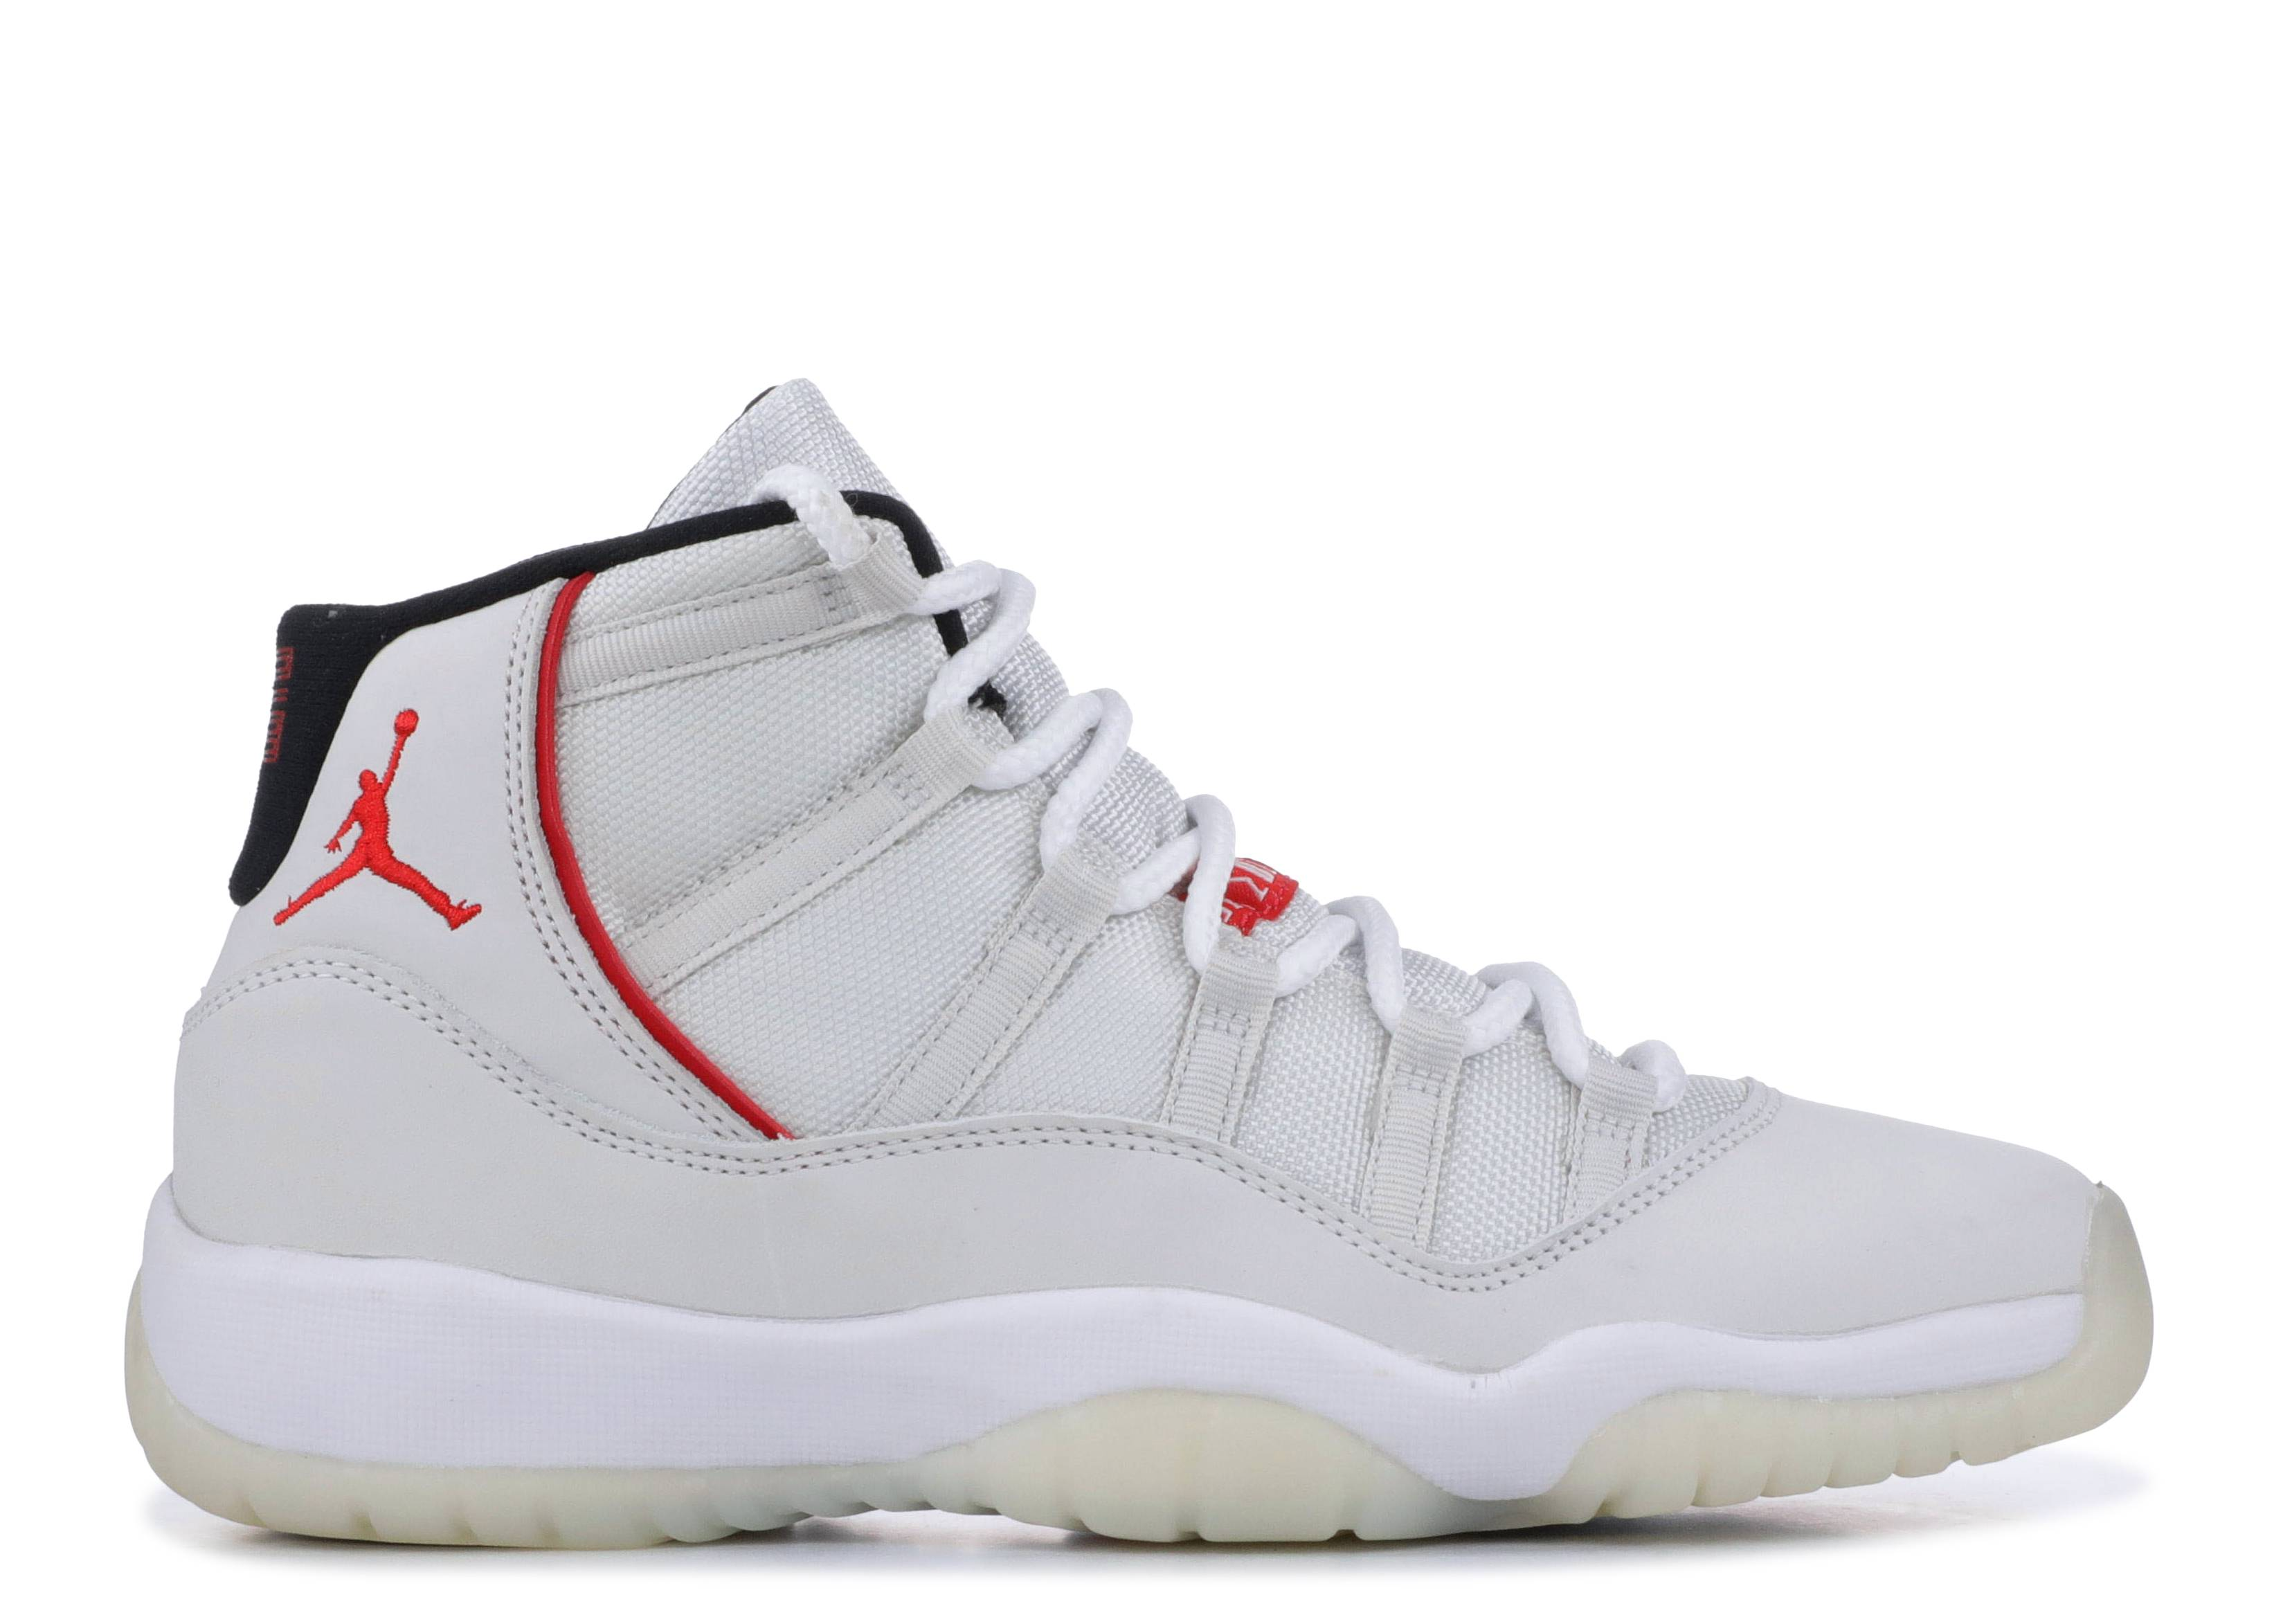 online retailer d25d3 673f5 Air Jordan 11 (XI) Shoes - Nike   Flight Club